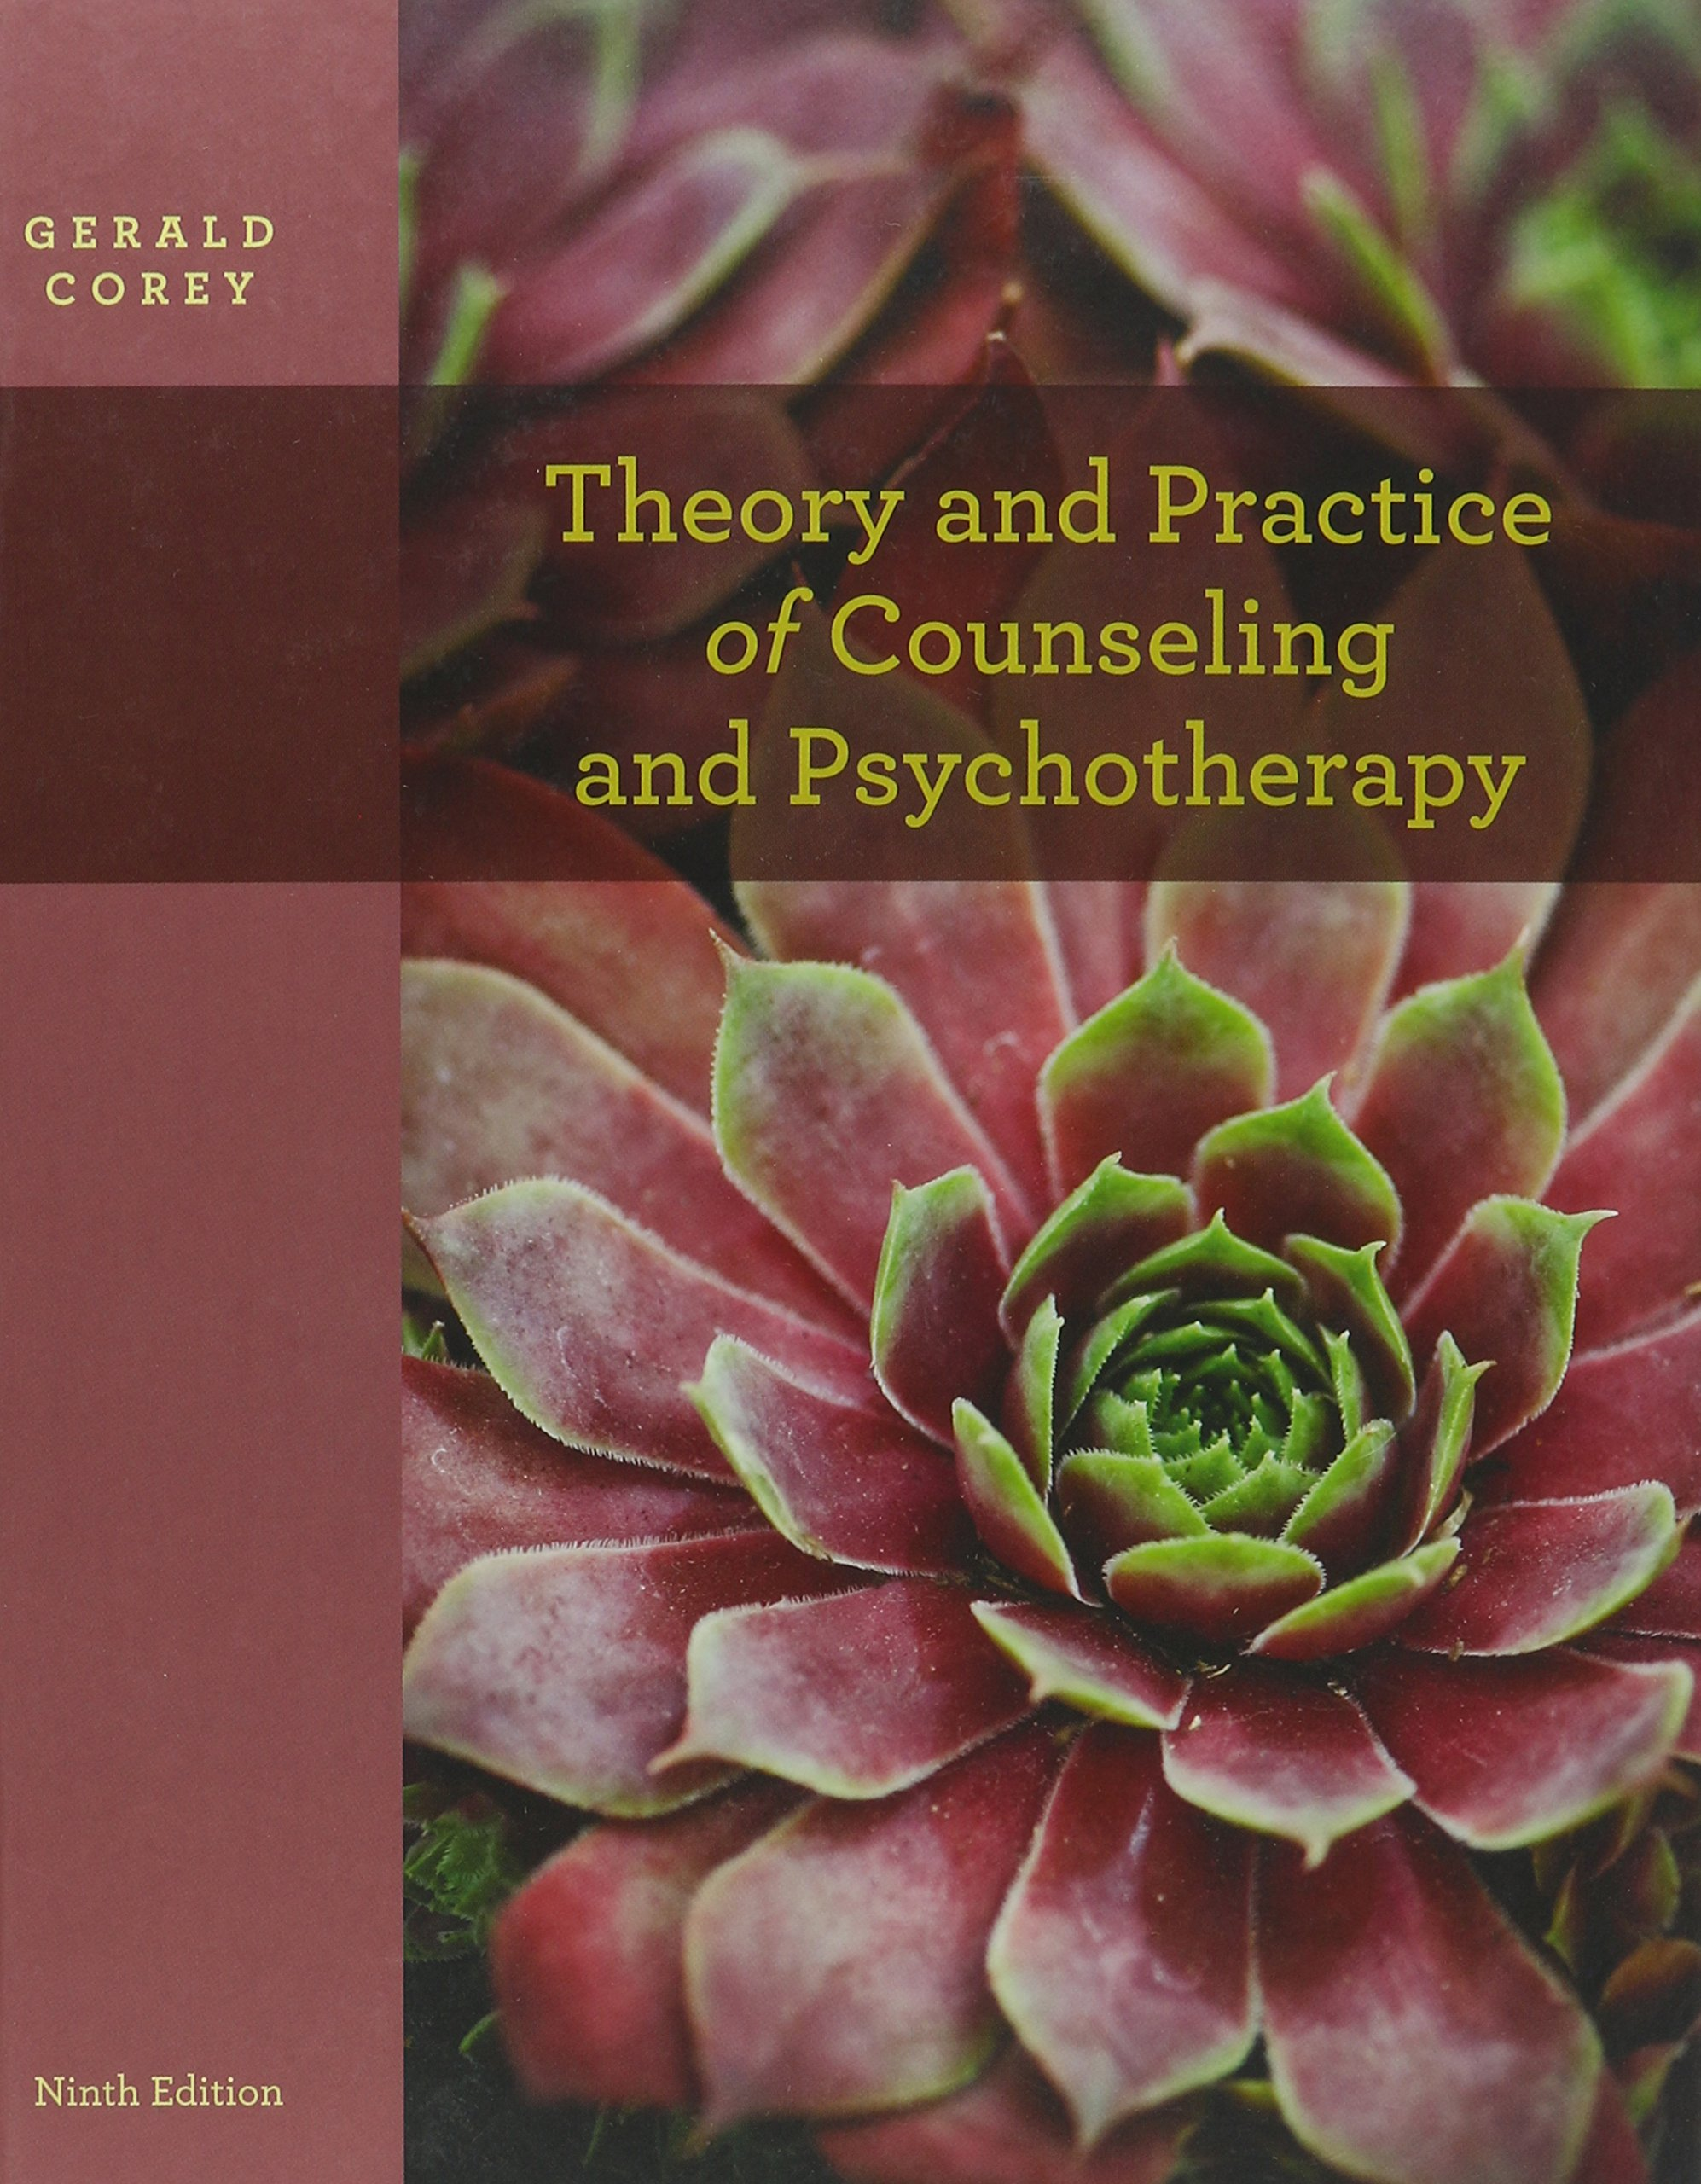 Bundle: Theory and Practice of Counseling and Psychotherapy, 9th + Case Approach to Counseling and Psychotherapy, 8th